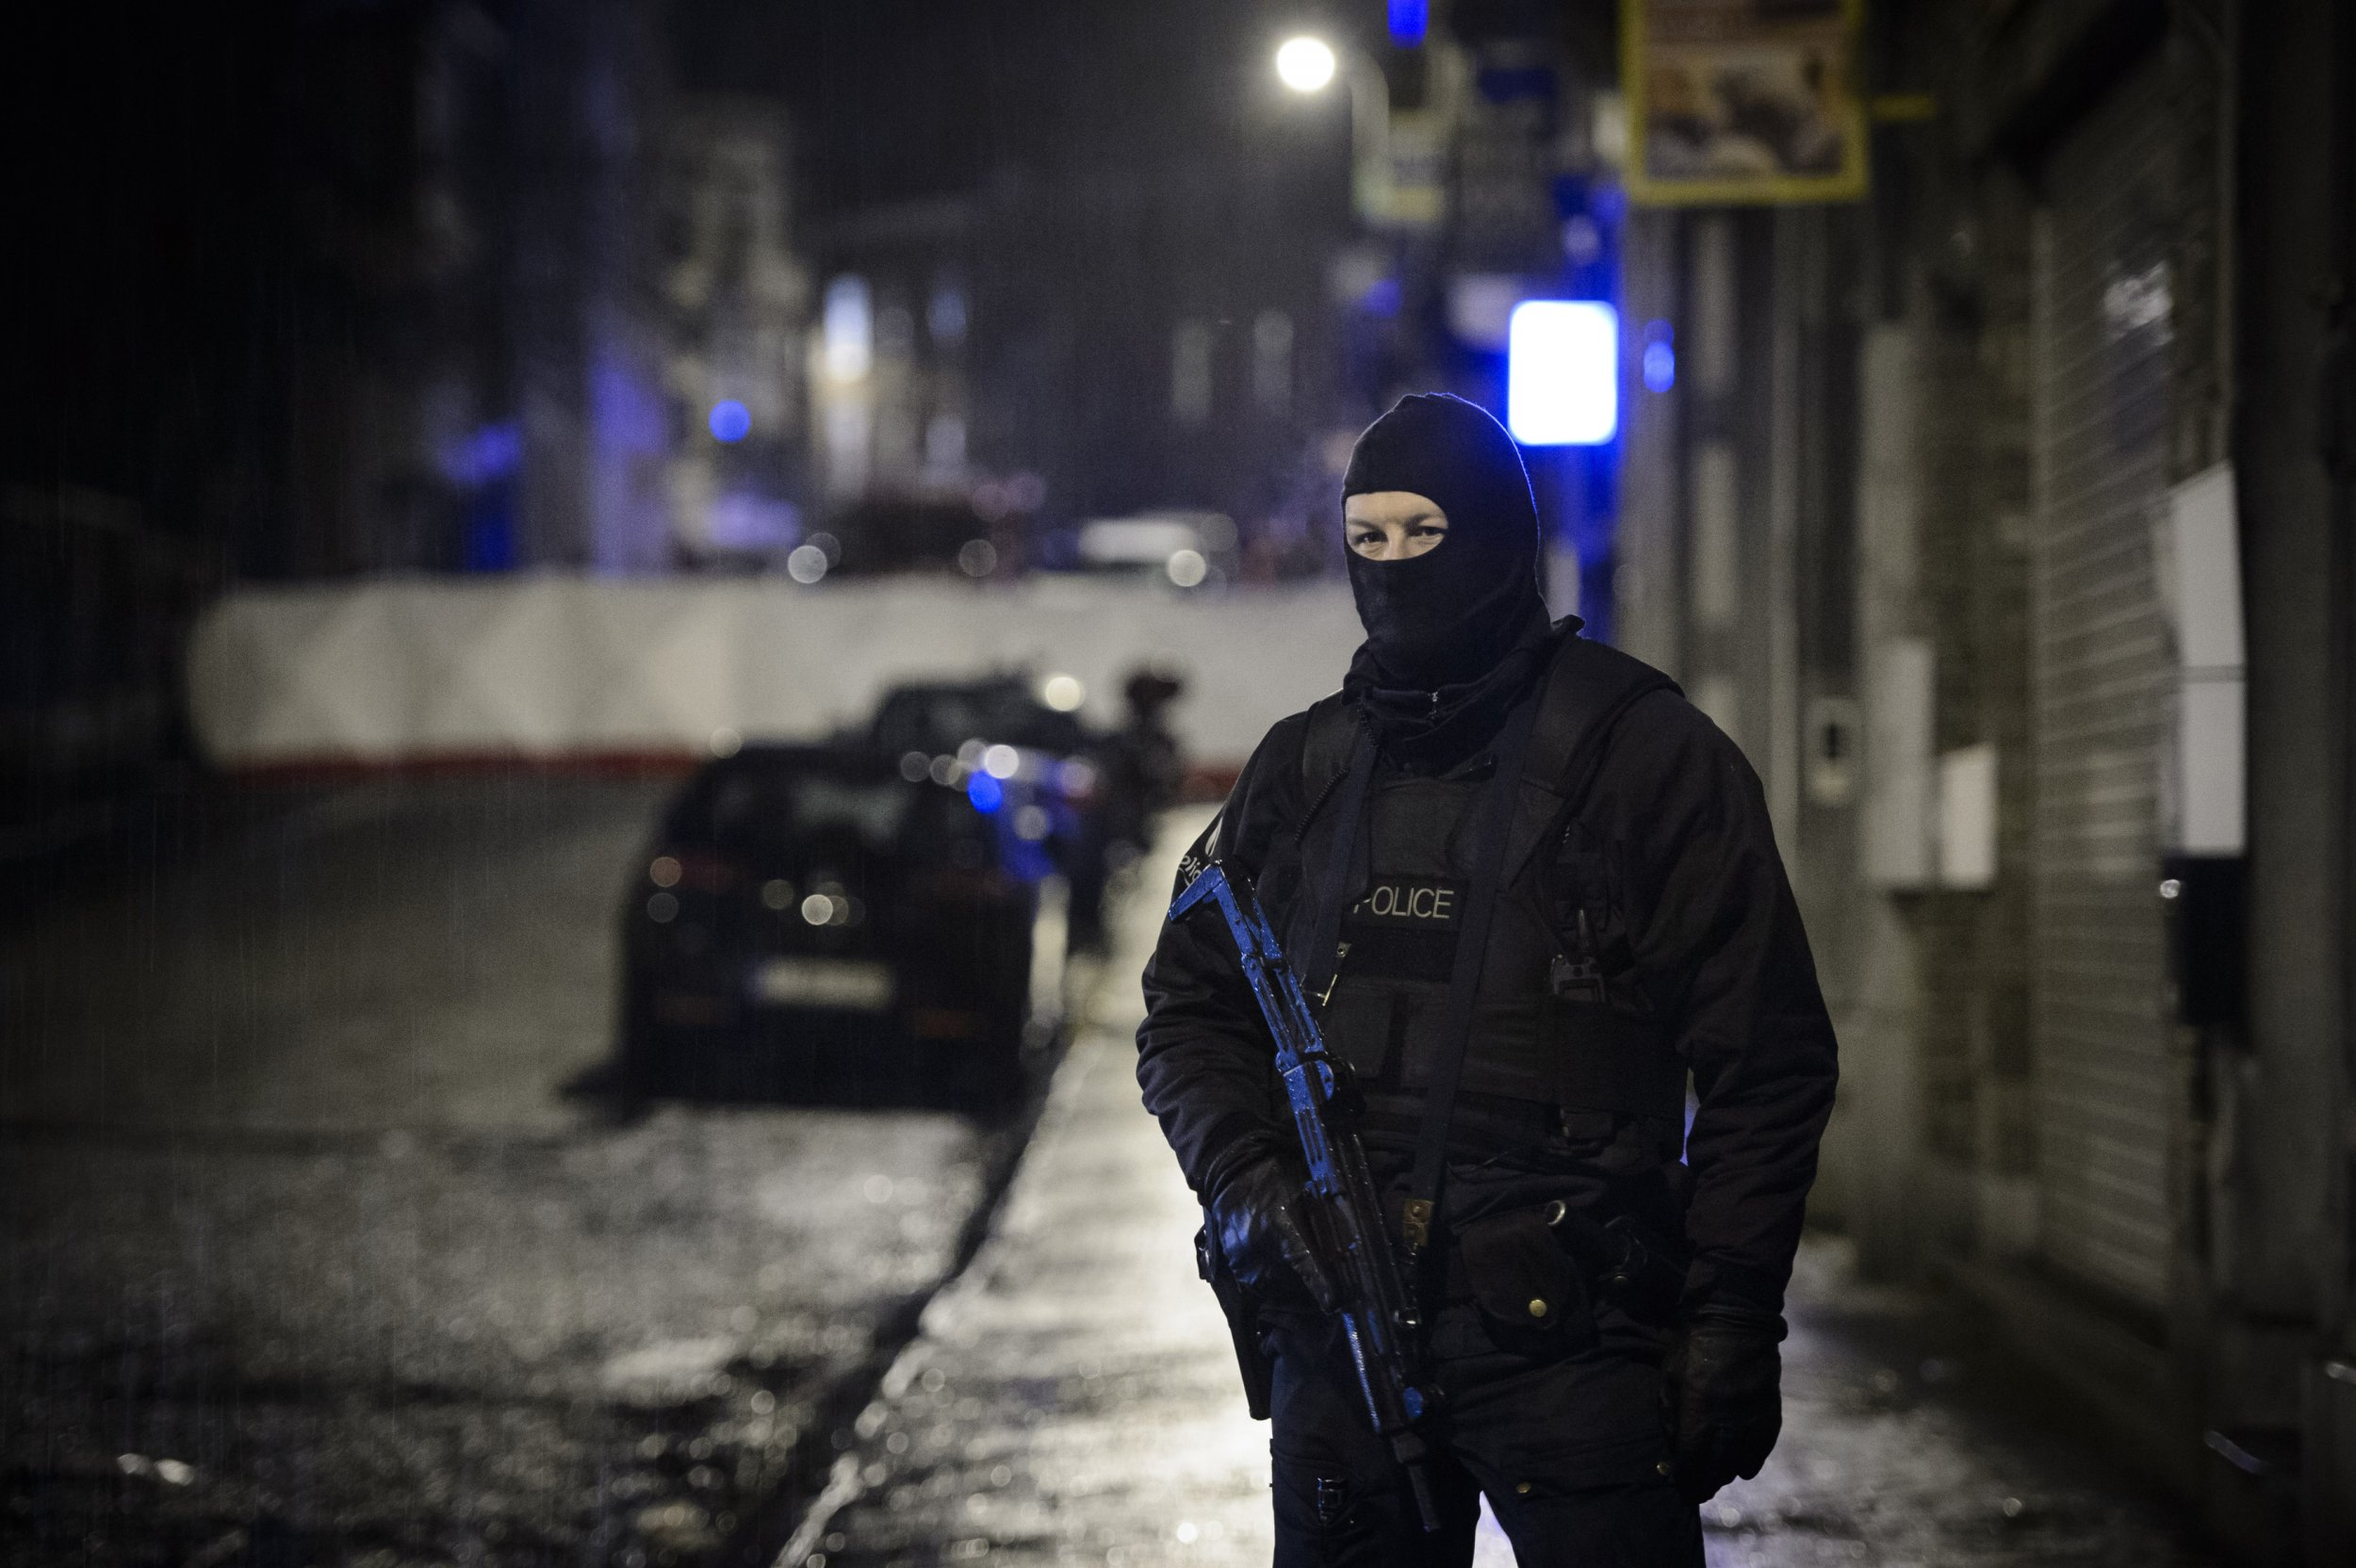 Belgium Arrests 15 Over Foiled Plot to 'Kill Police'